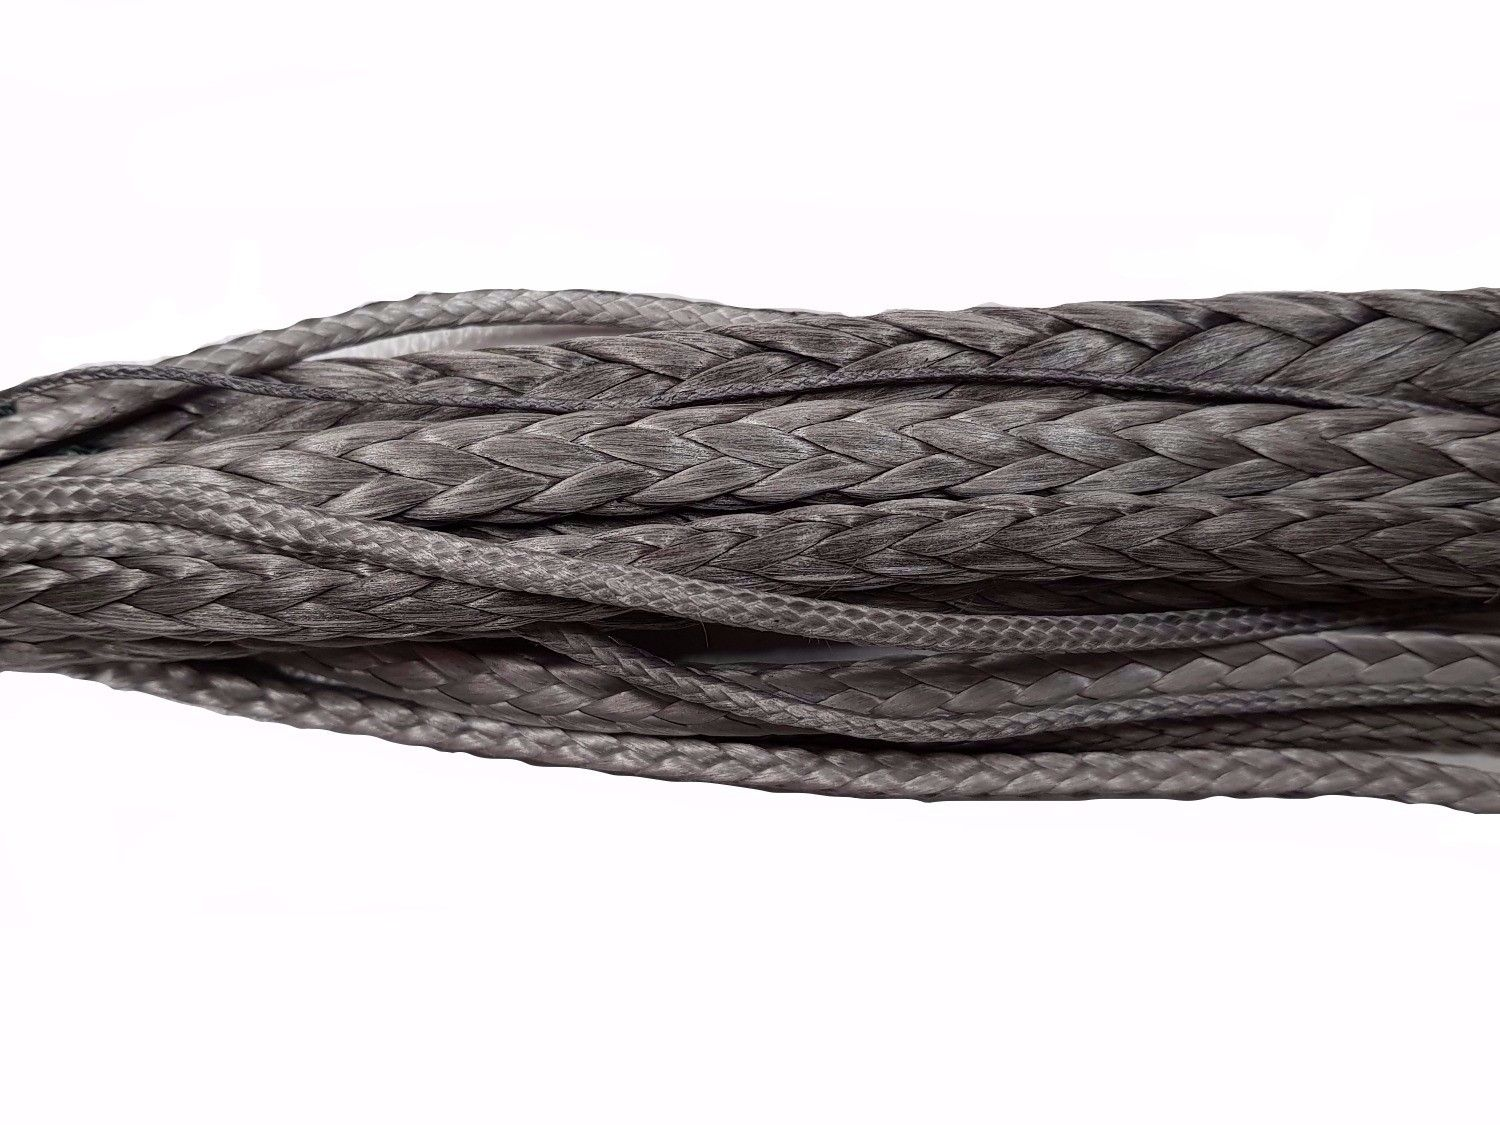 Dyneema Rope For Sale in Perth, Western Australia